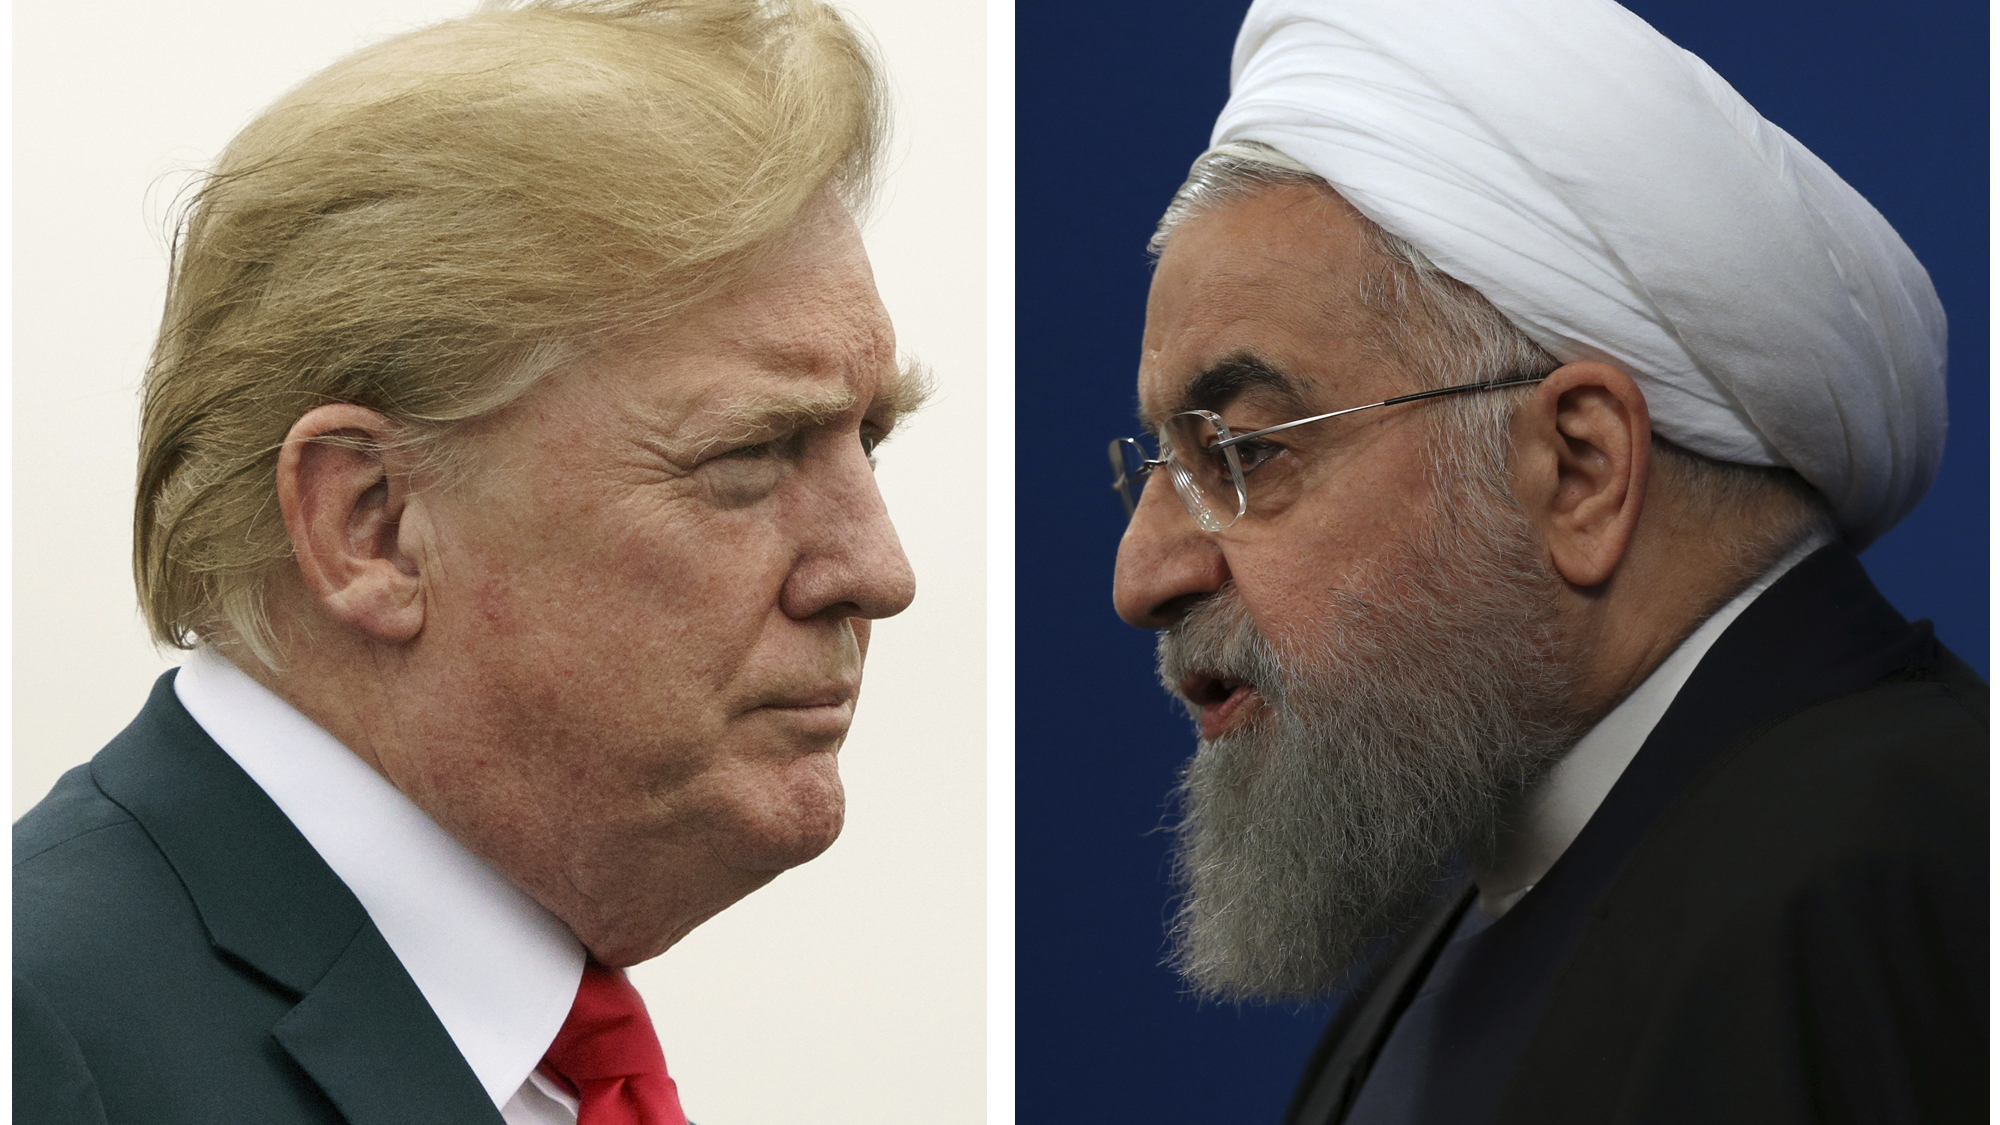 Donald Trump tells Iran they will 'SUFFER CONSEQUENCES' in angry tweet